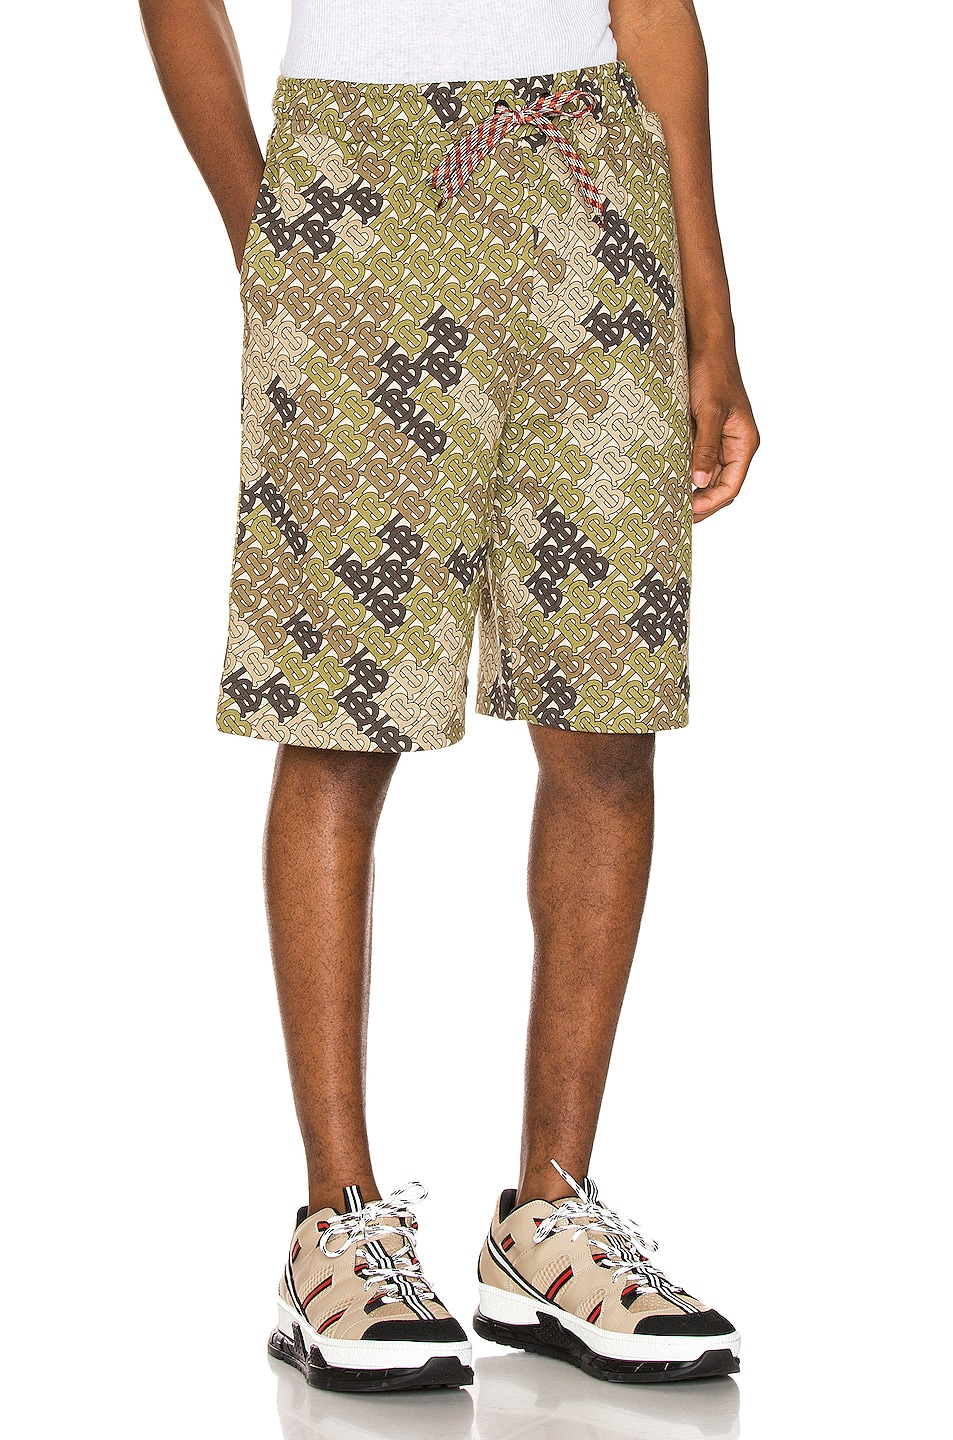 Image 2 of Burberry Camile Shorts in Khaki Green